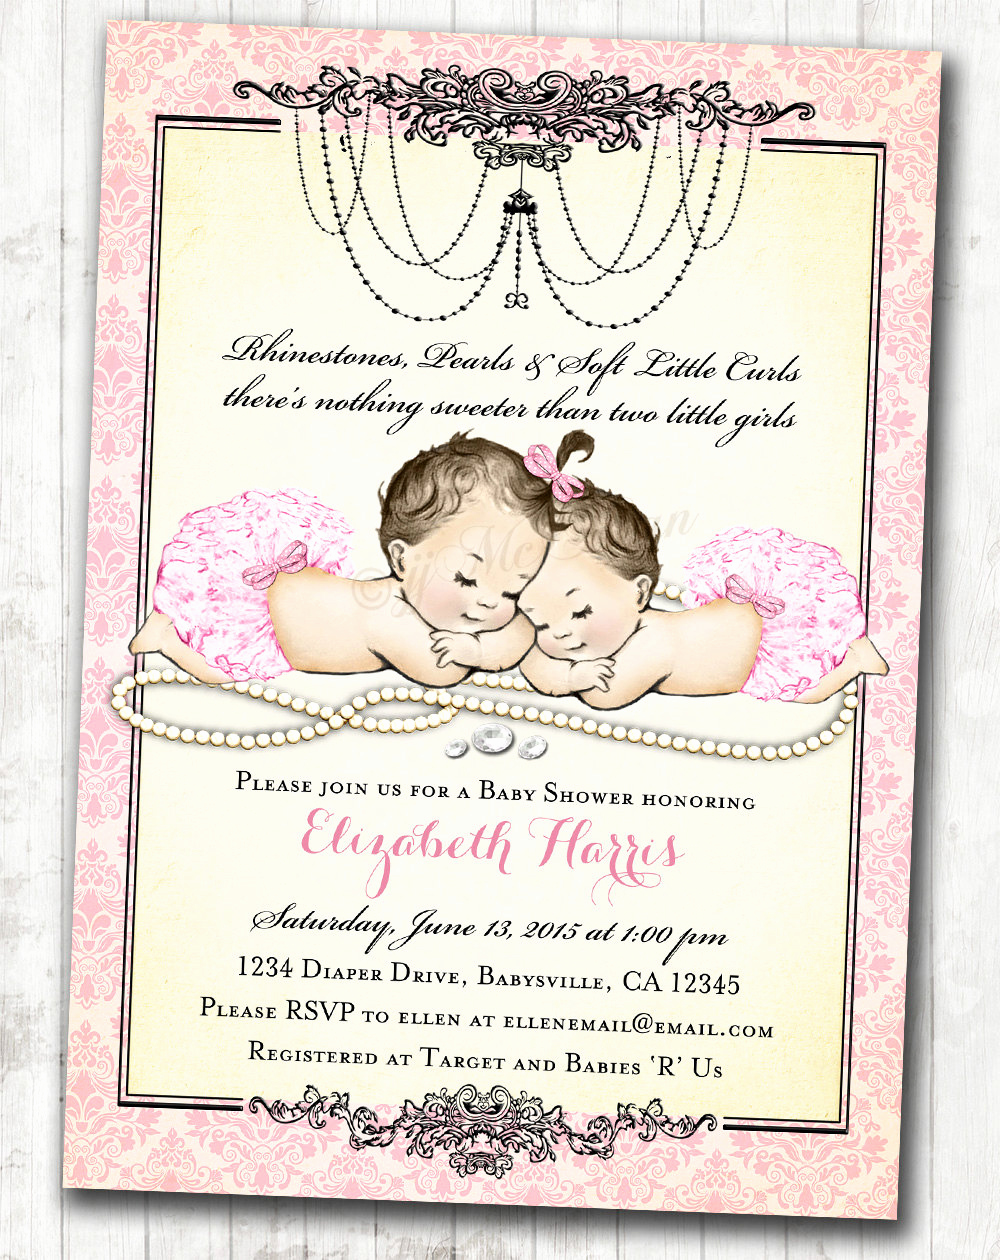 Baby Shower Invitation for Girls New Twin Girls Baby Shower Invitation for Baby Girls Pink Vintage